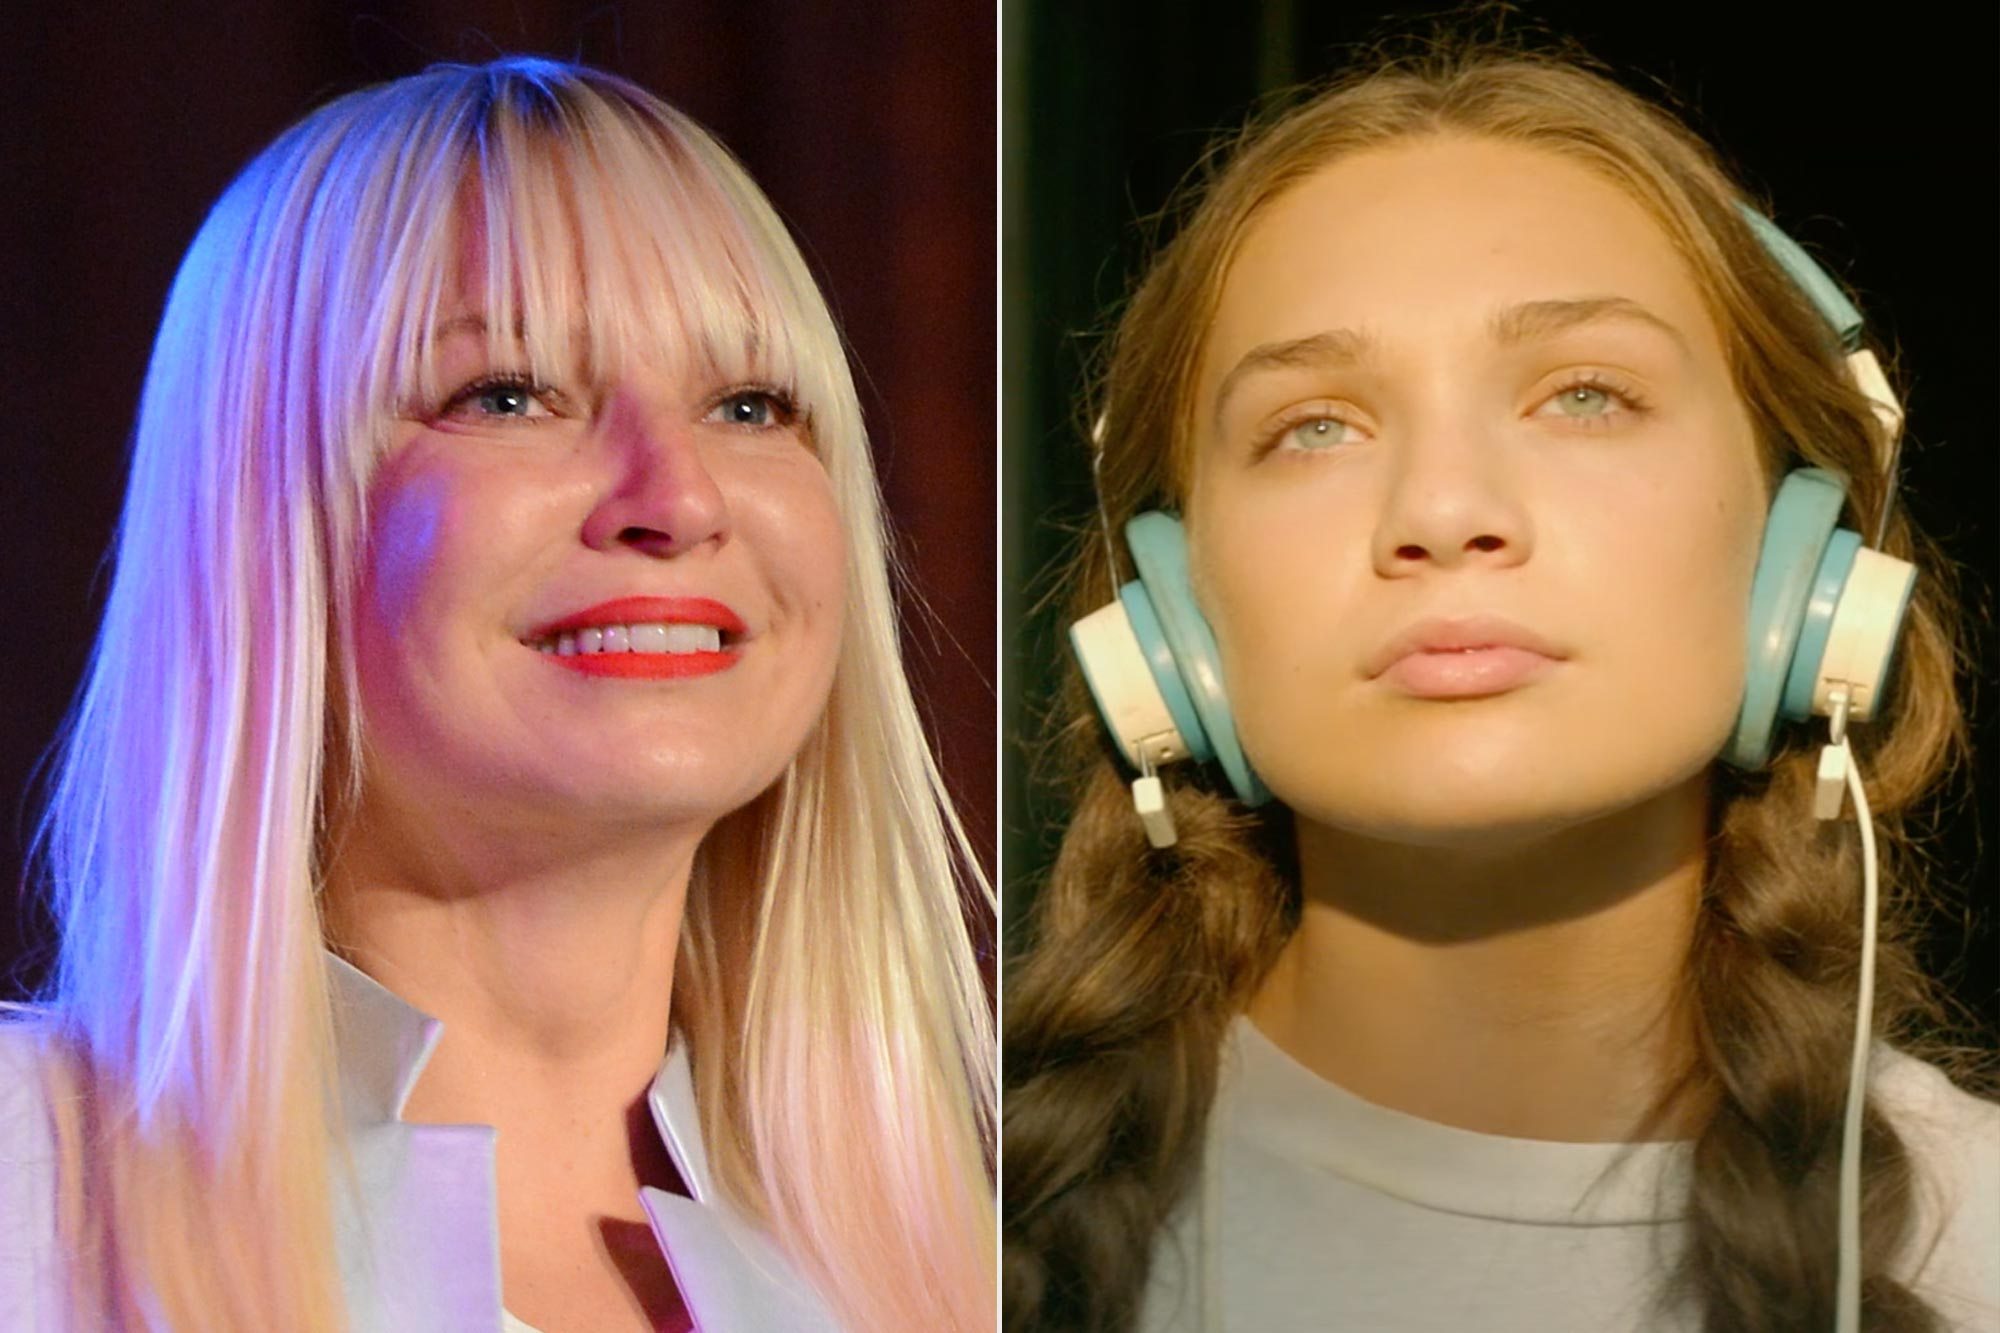 Sia; Music, a film by Sia - coming in early 2021